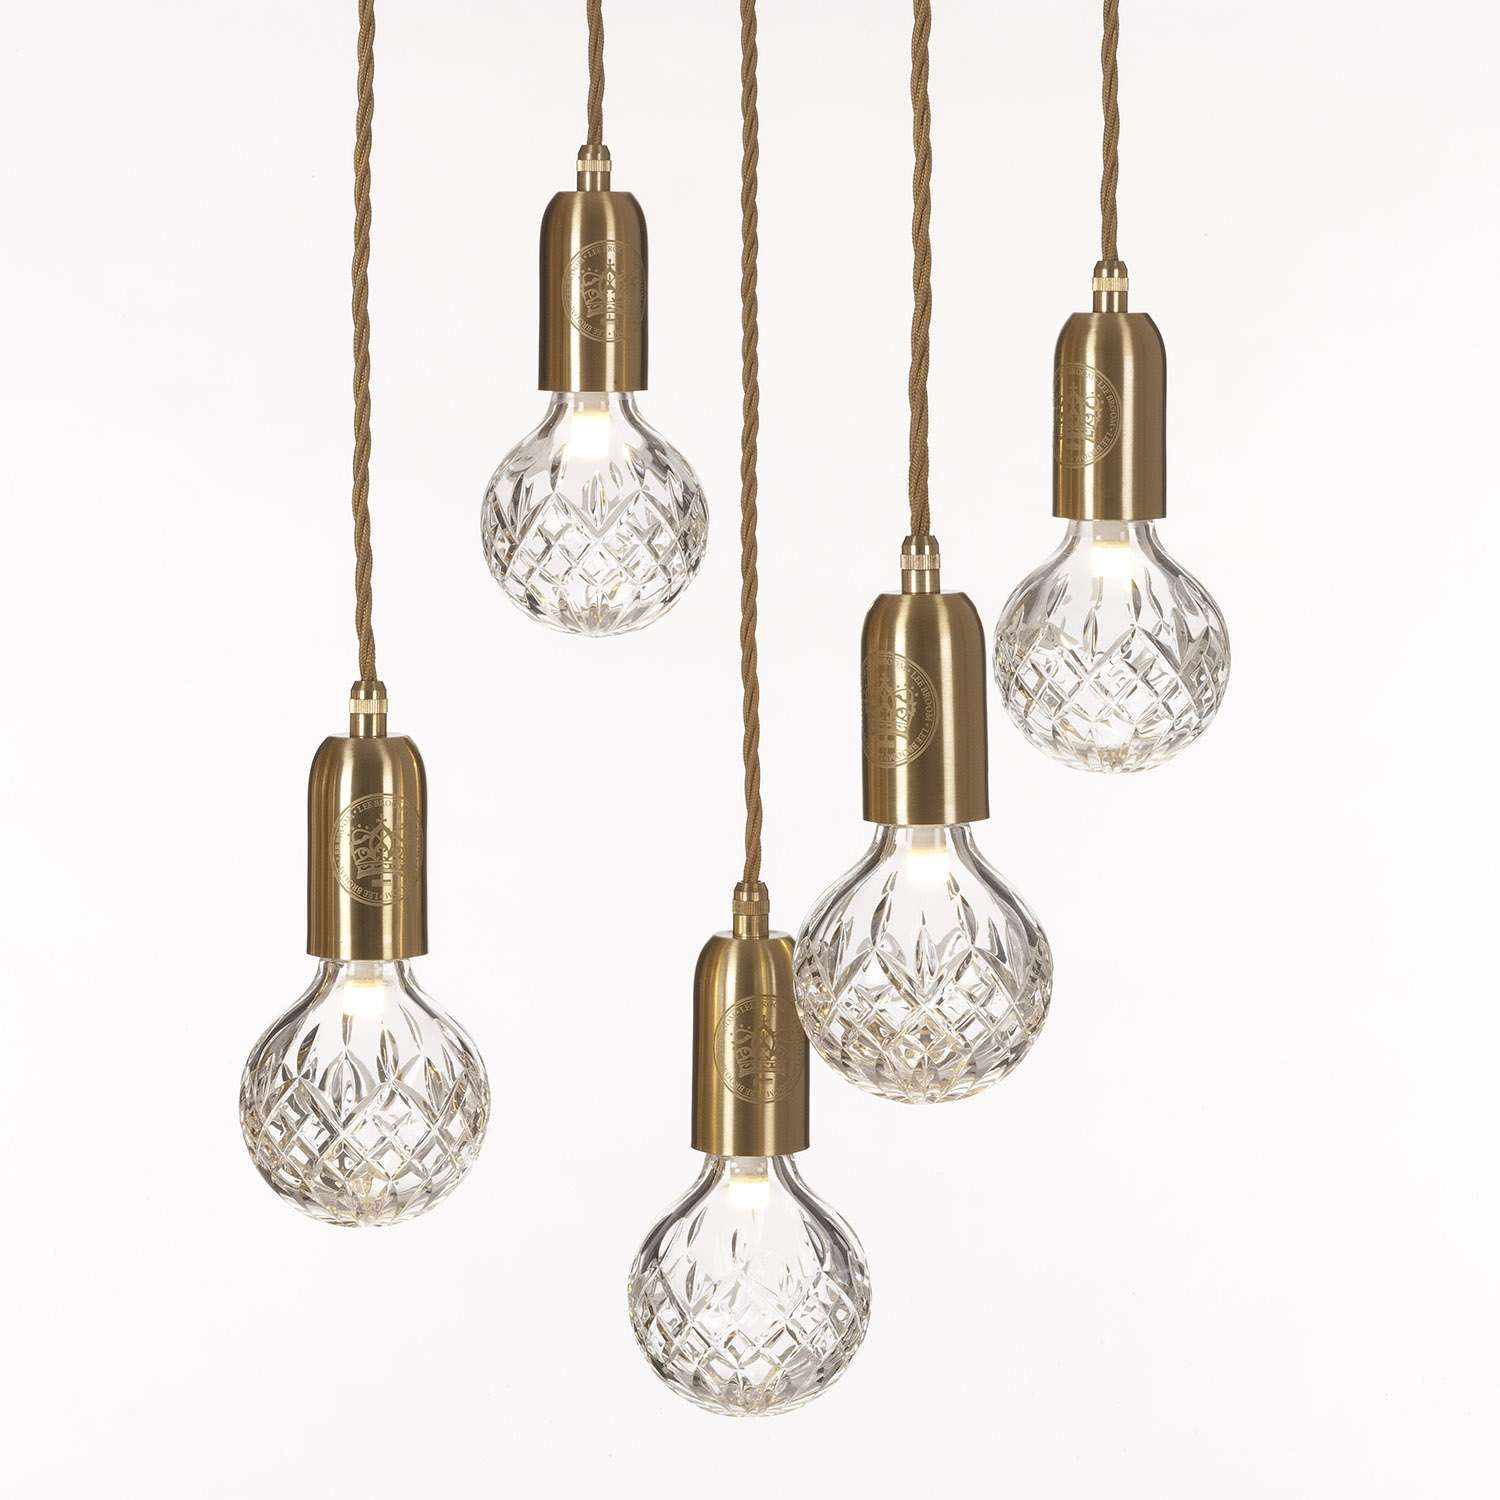 Clear Crystal Shown In Grouping With Images Ceiling Pendant Lights Pendant Light Led Pendant Lights